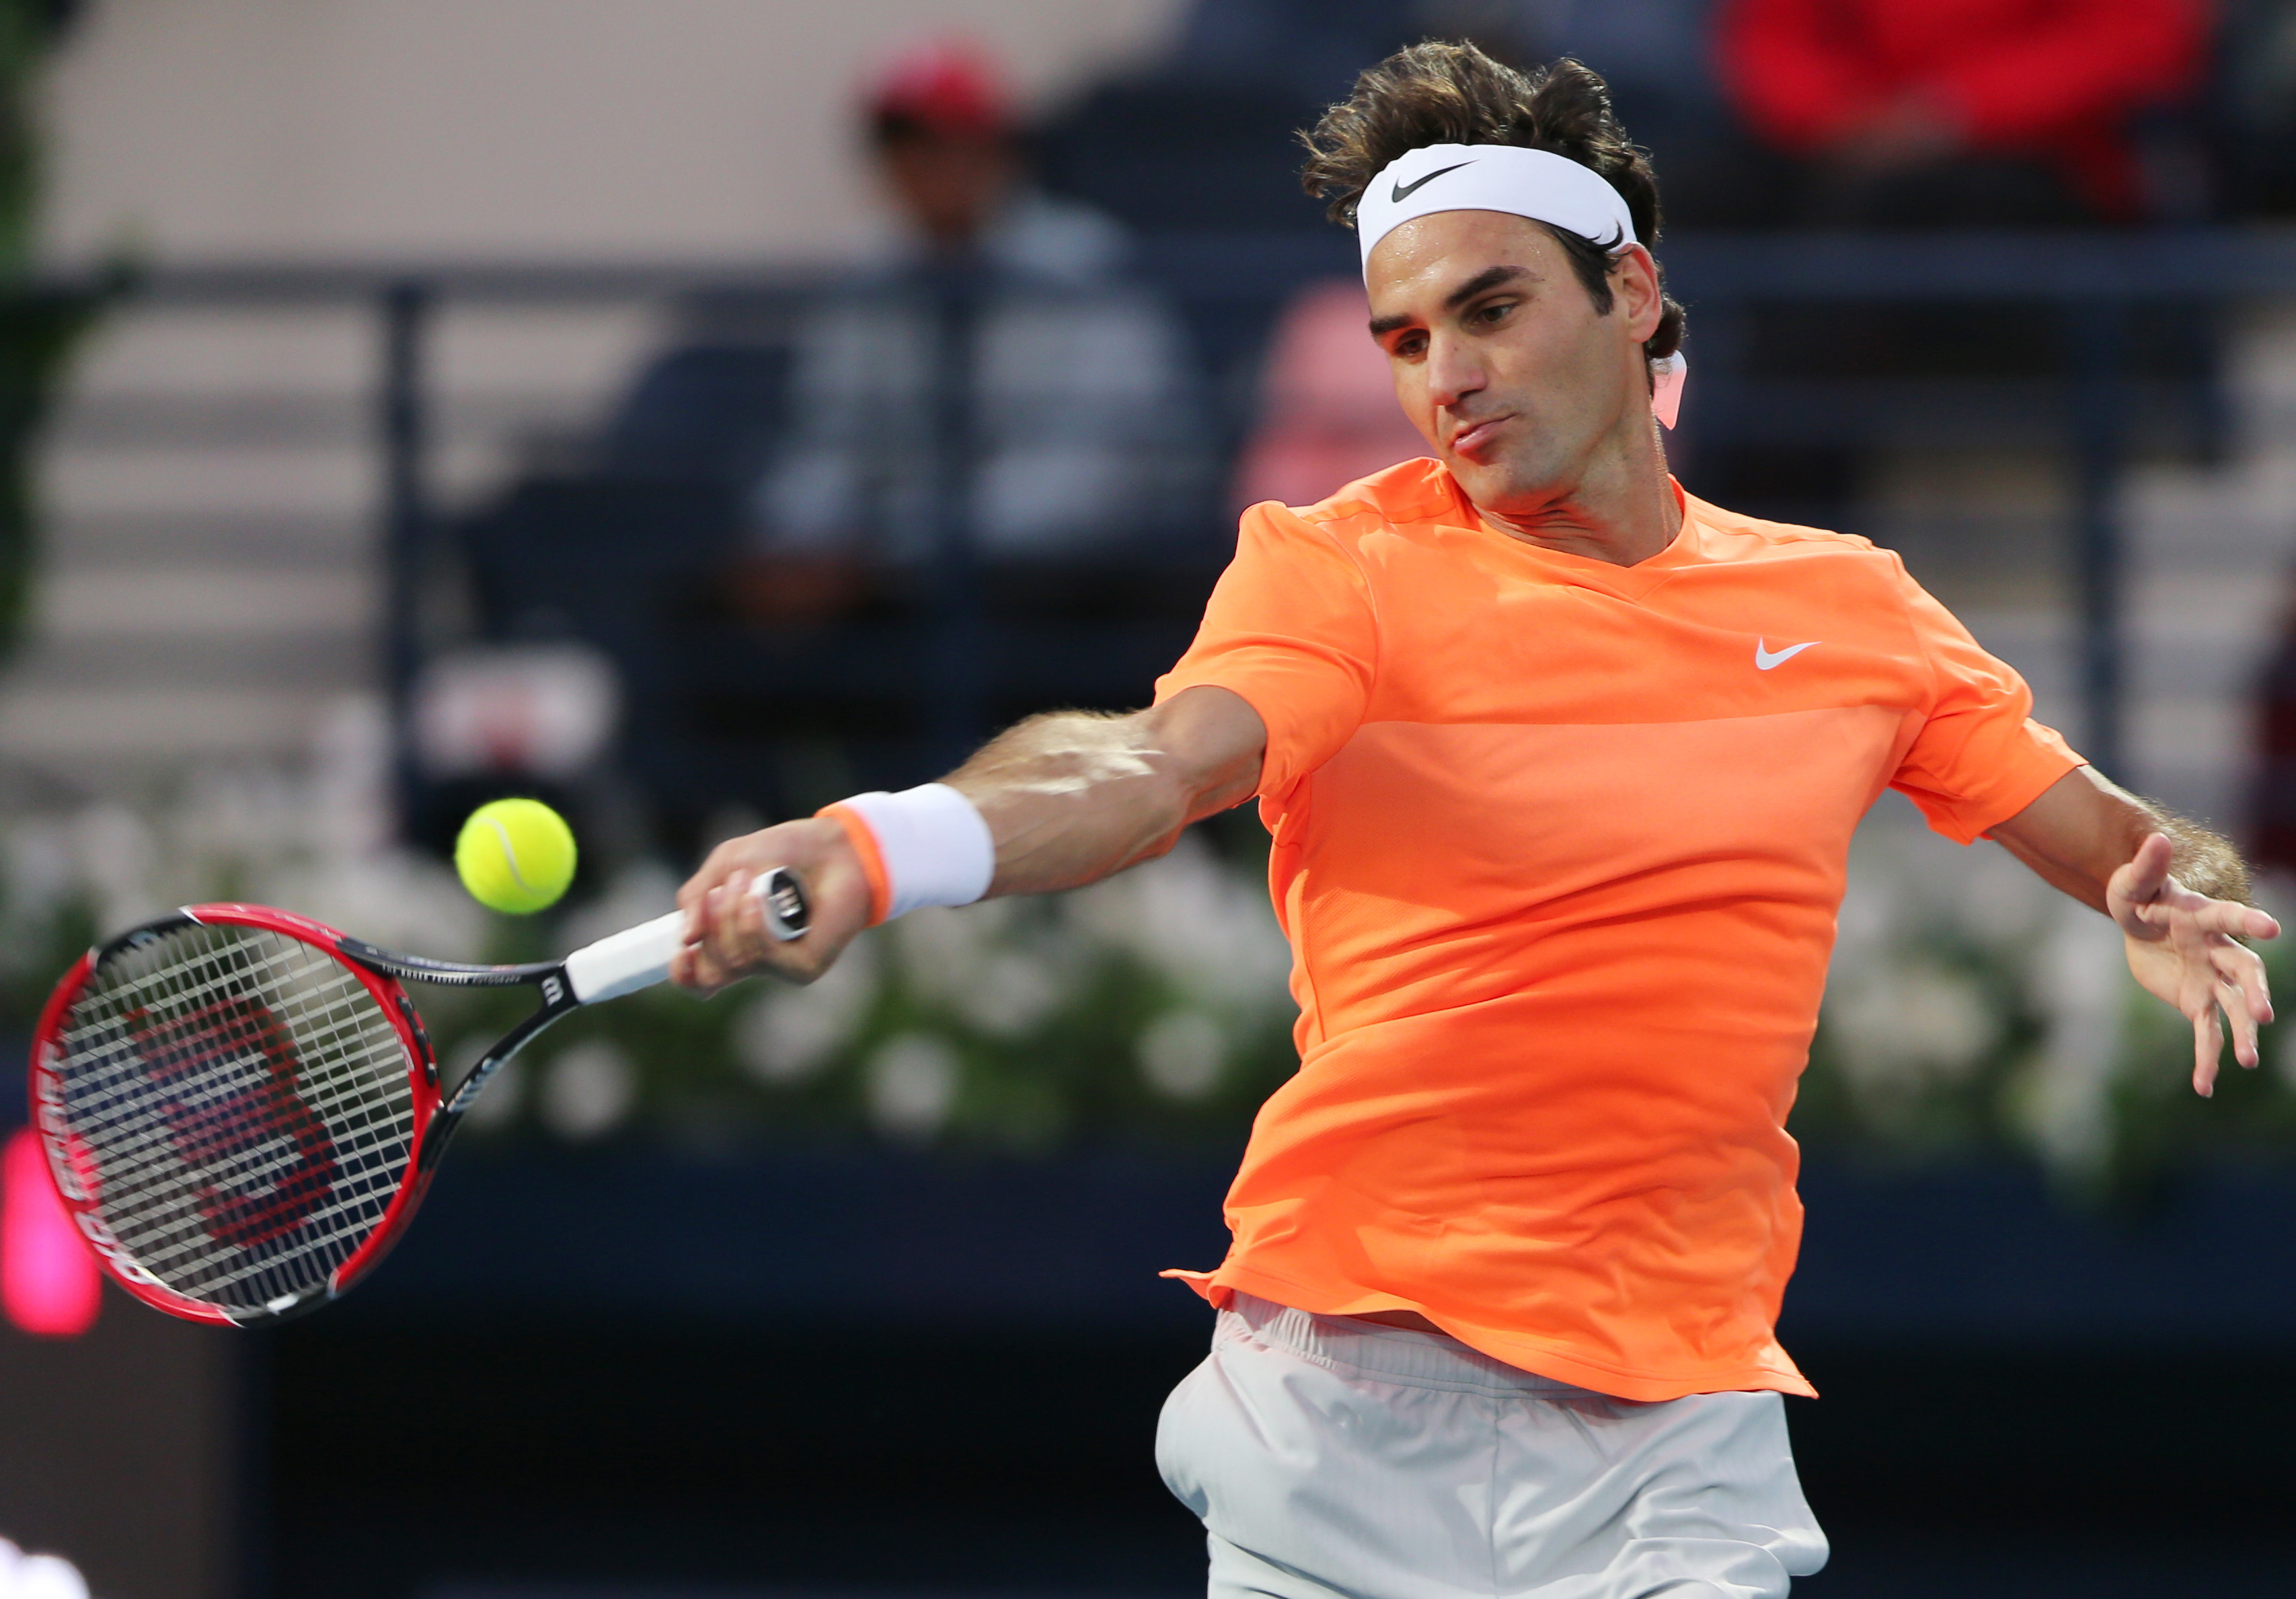 Defending champ Federer beats Coric to make Dubai final